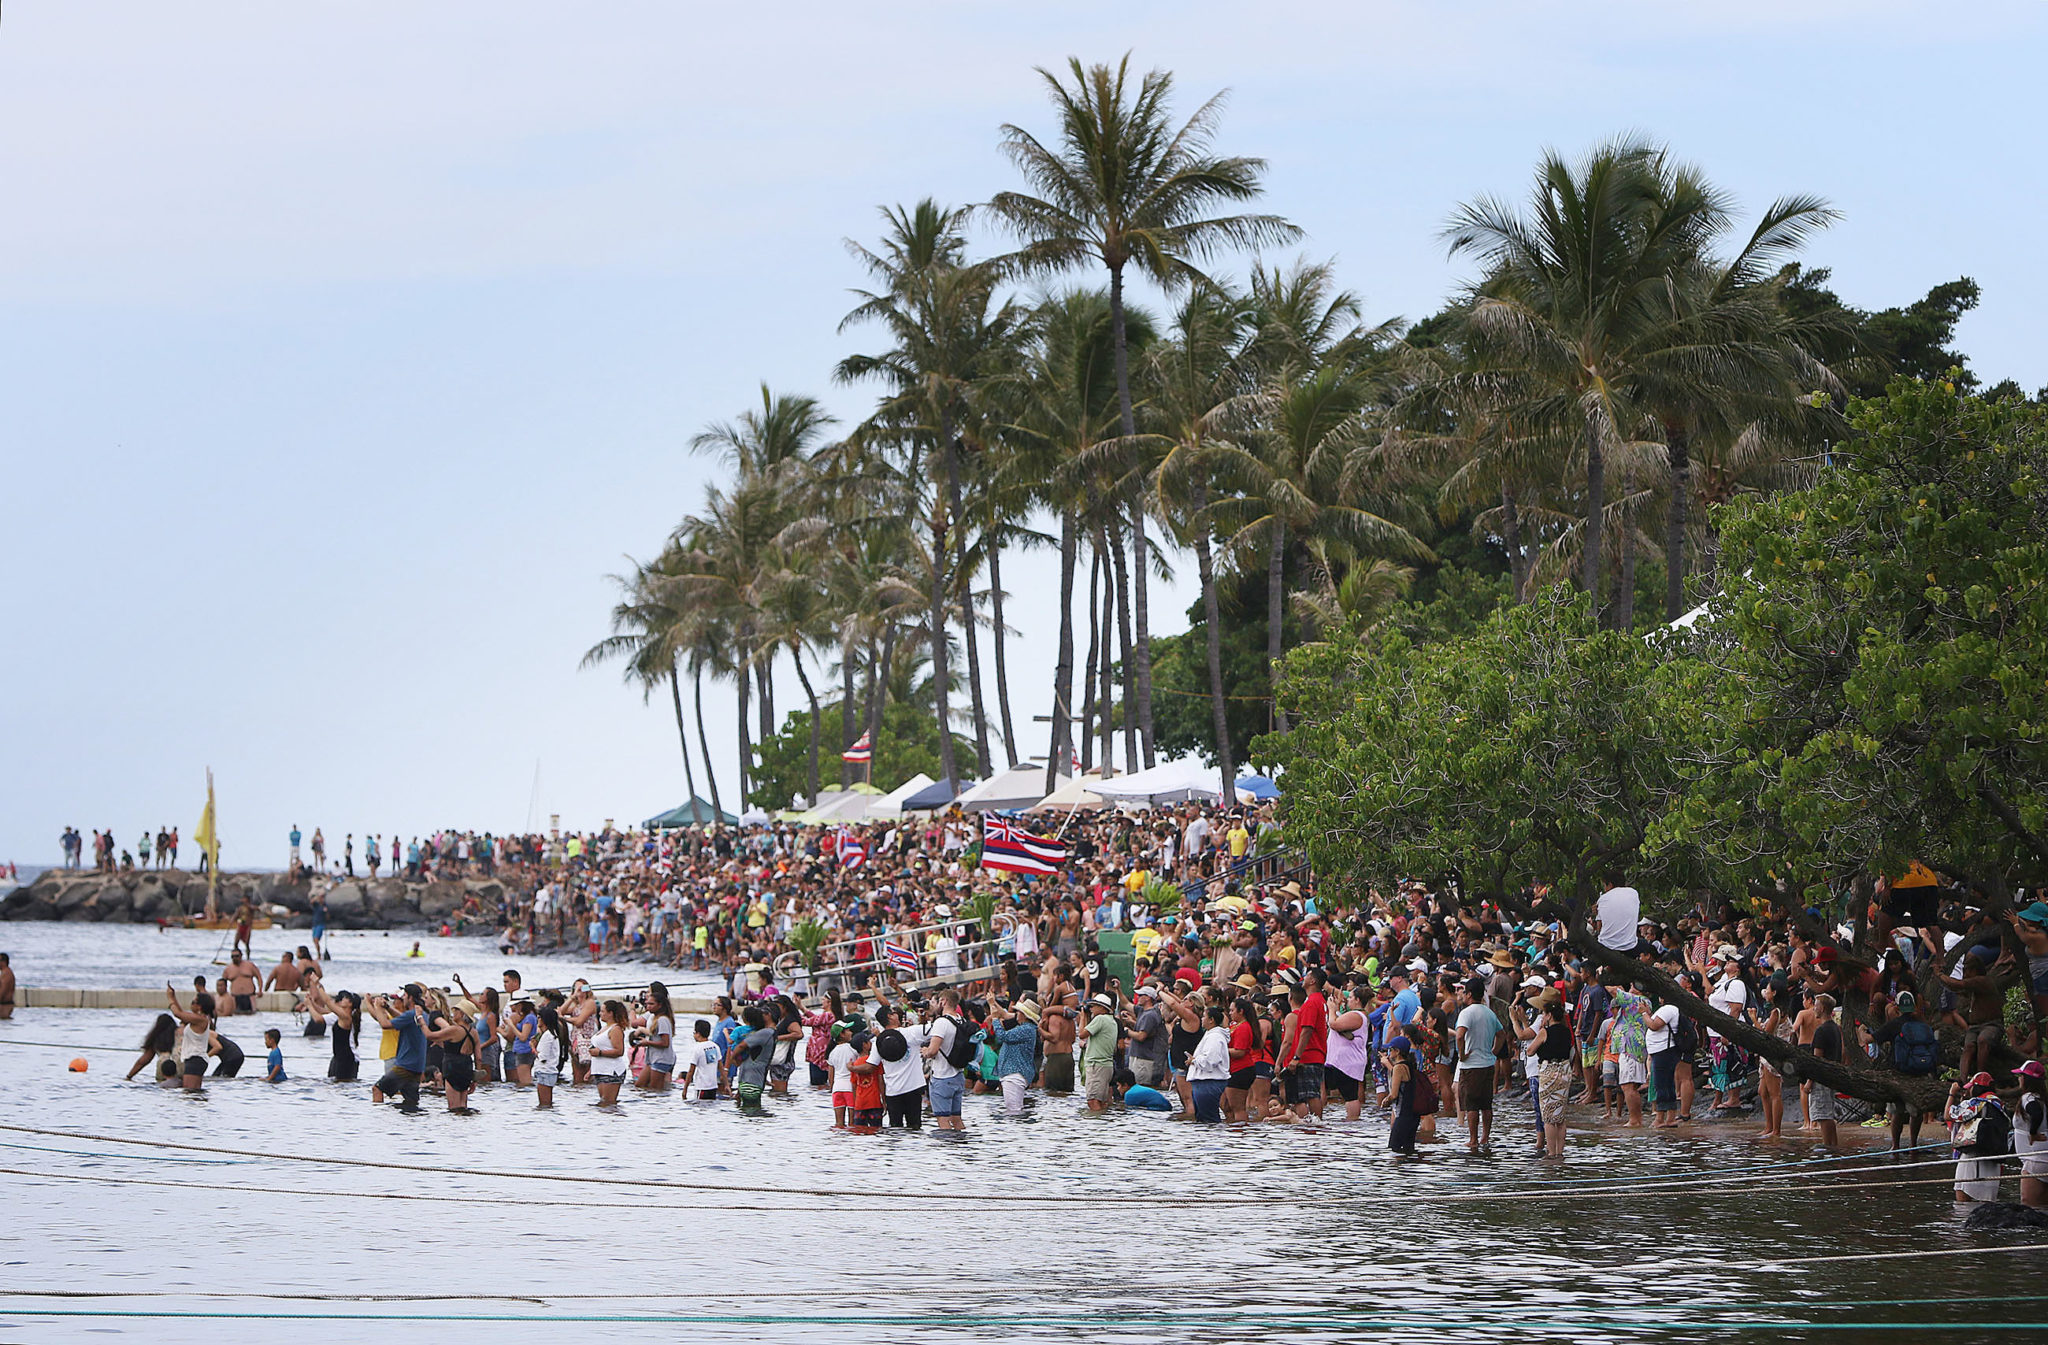 <p>Thousands of people mass on the shore at Magic Island to greet the Hokulea. / Cory Lum</p>